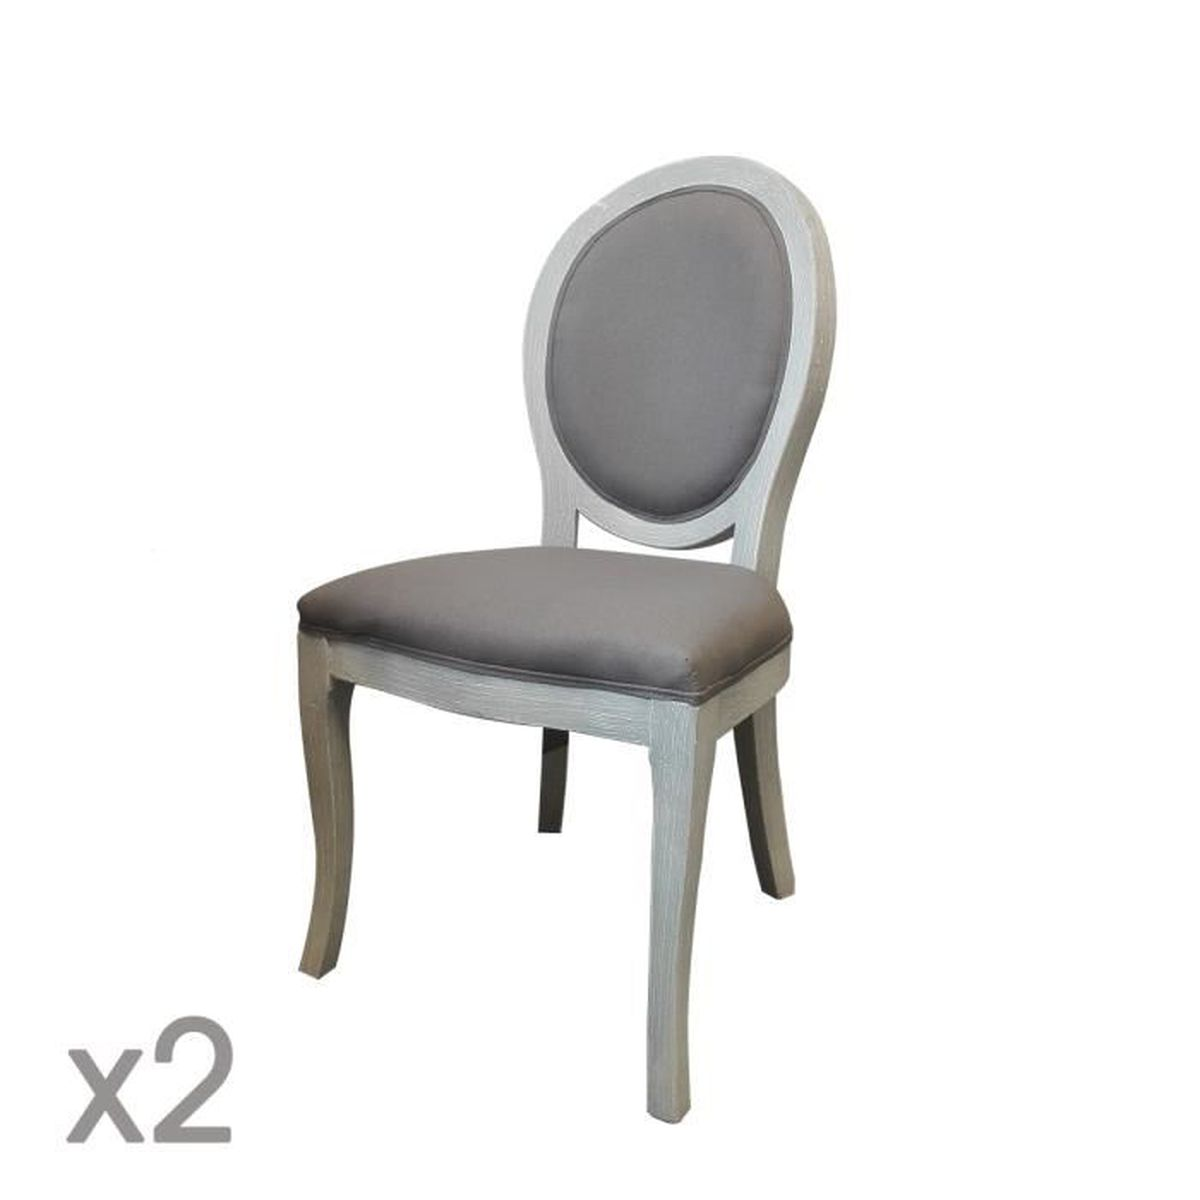 2 chaises m daillon cl on taupe autres sable achat vente chaise gris soldes d s le 10. Black Bedroom Furniture Sets. Home Design Ideas